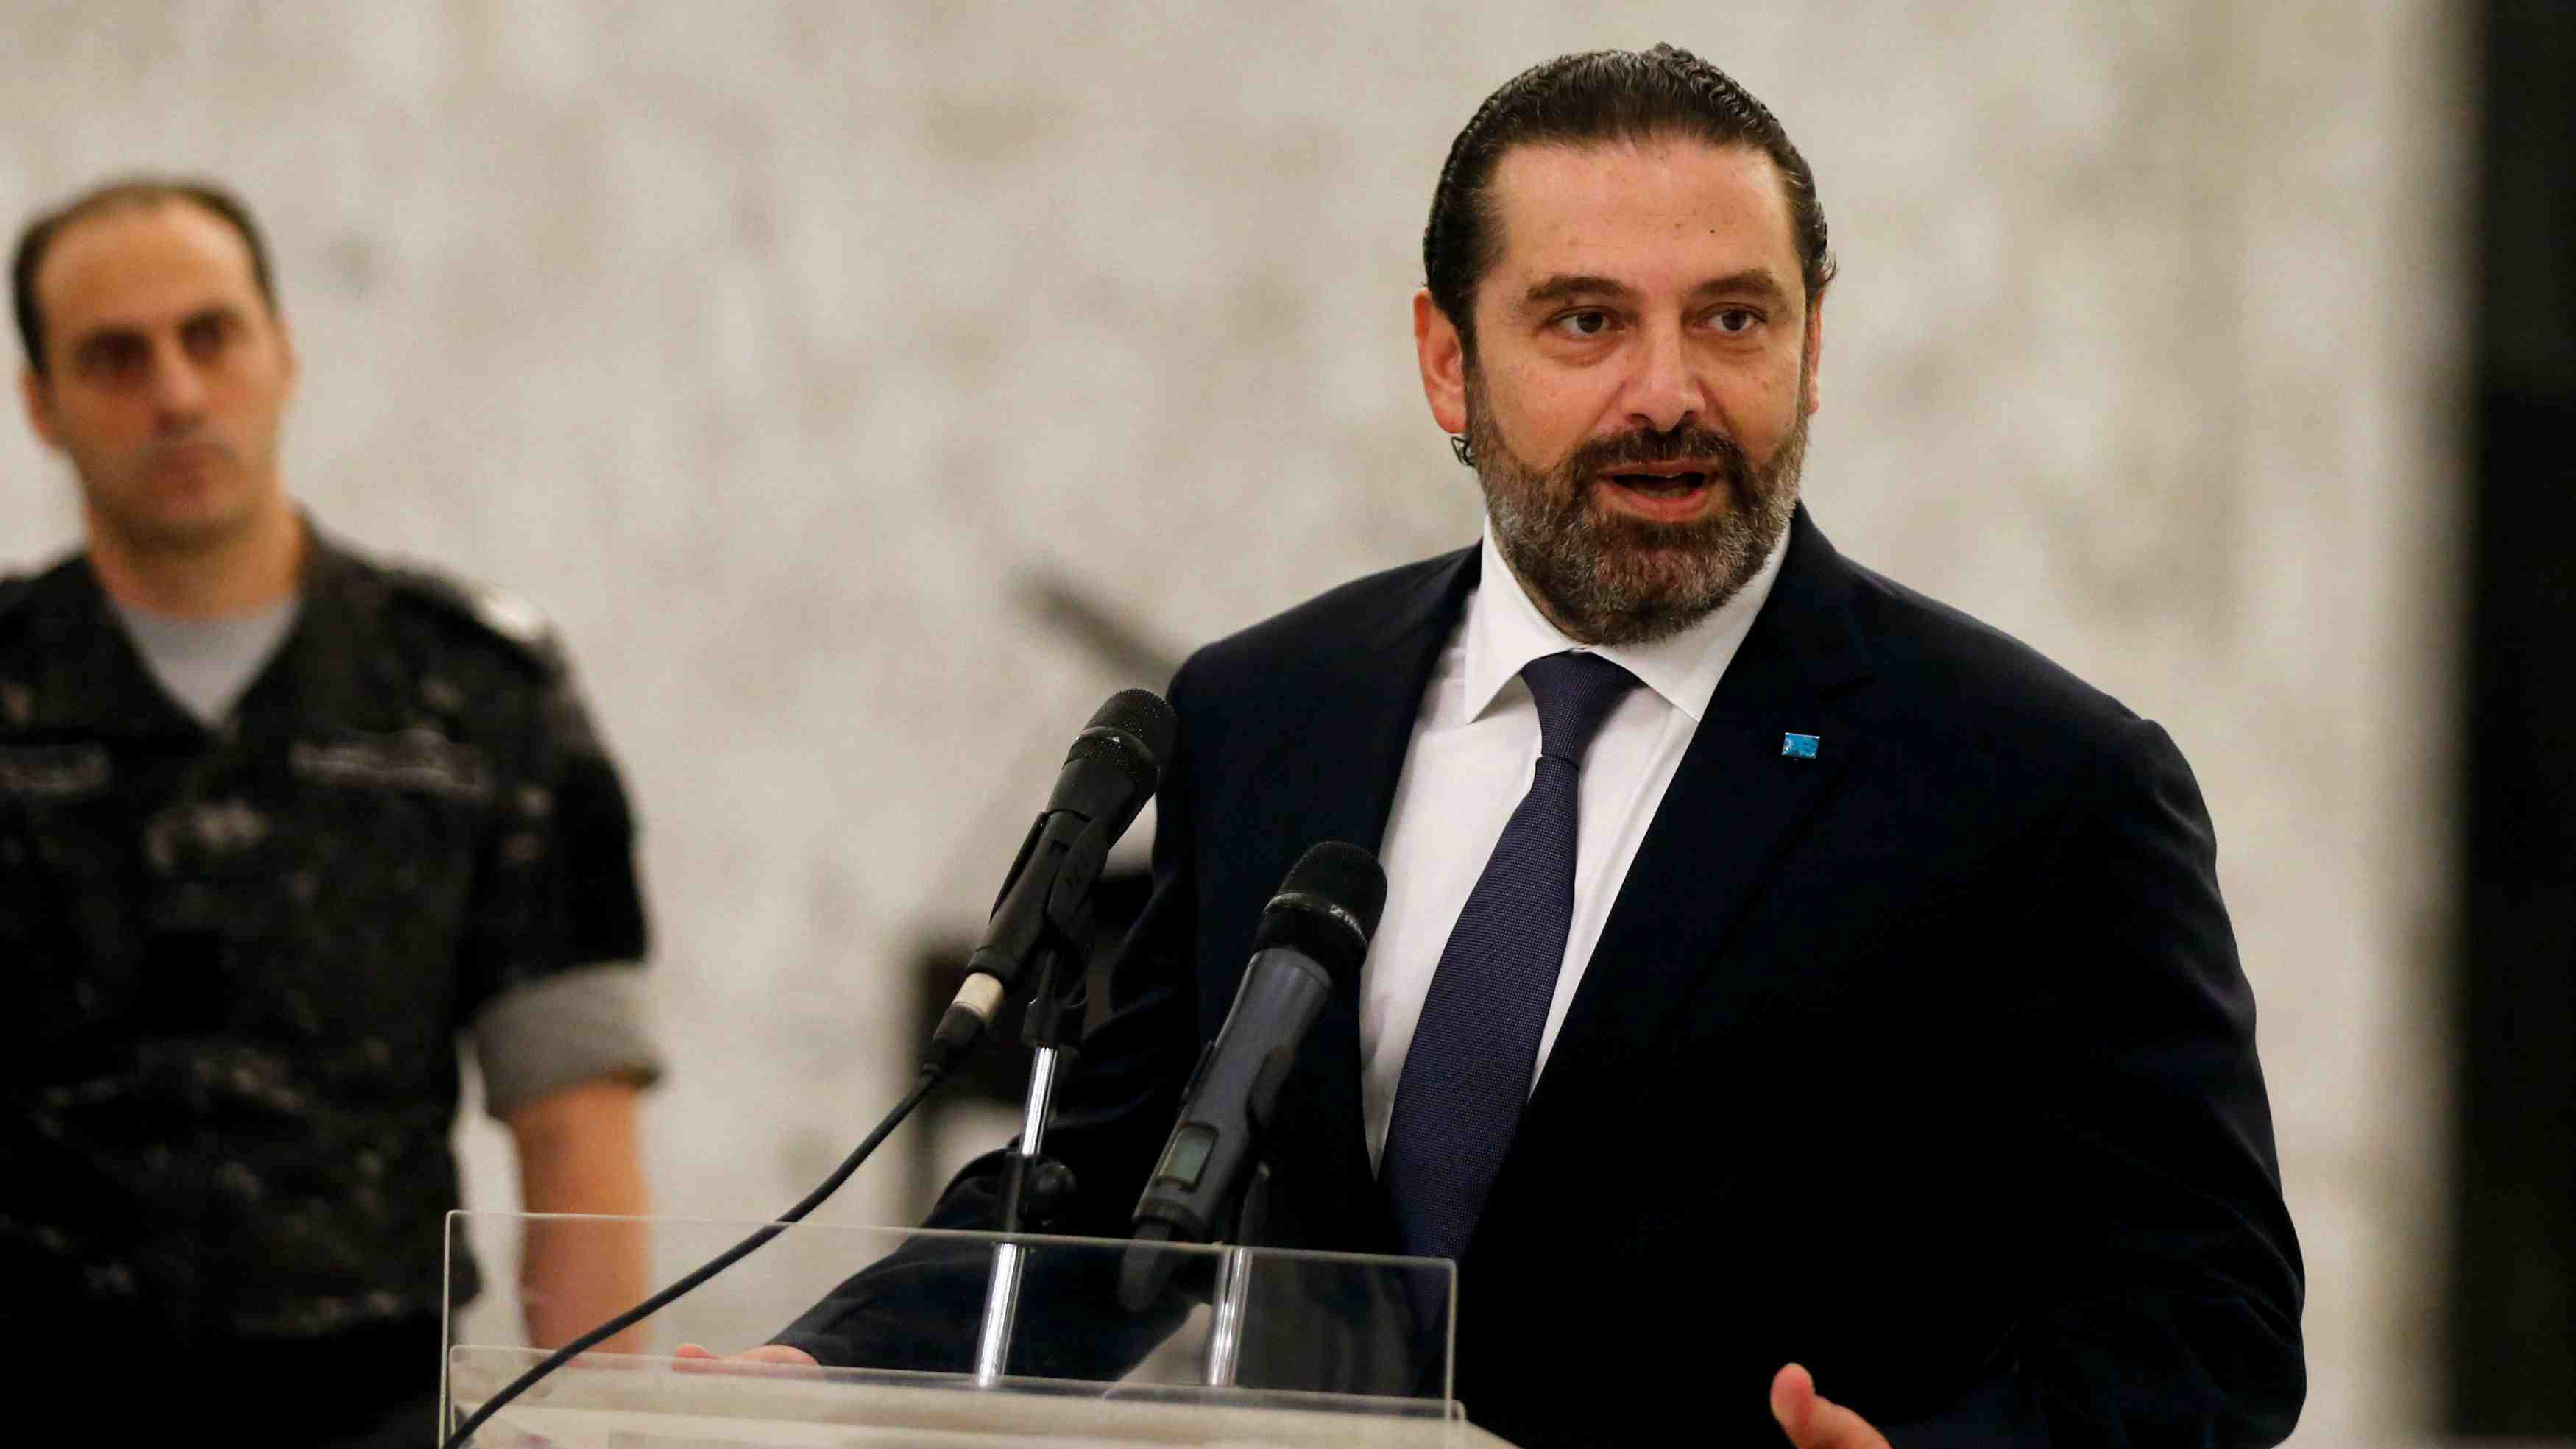 Lebanon's Hariri says he will not be PM again